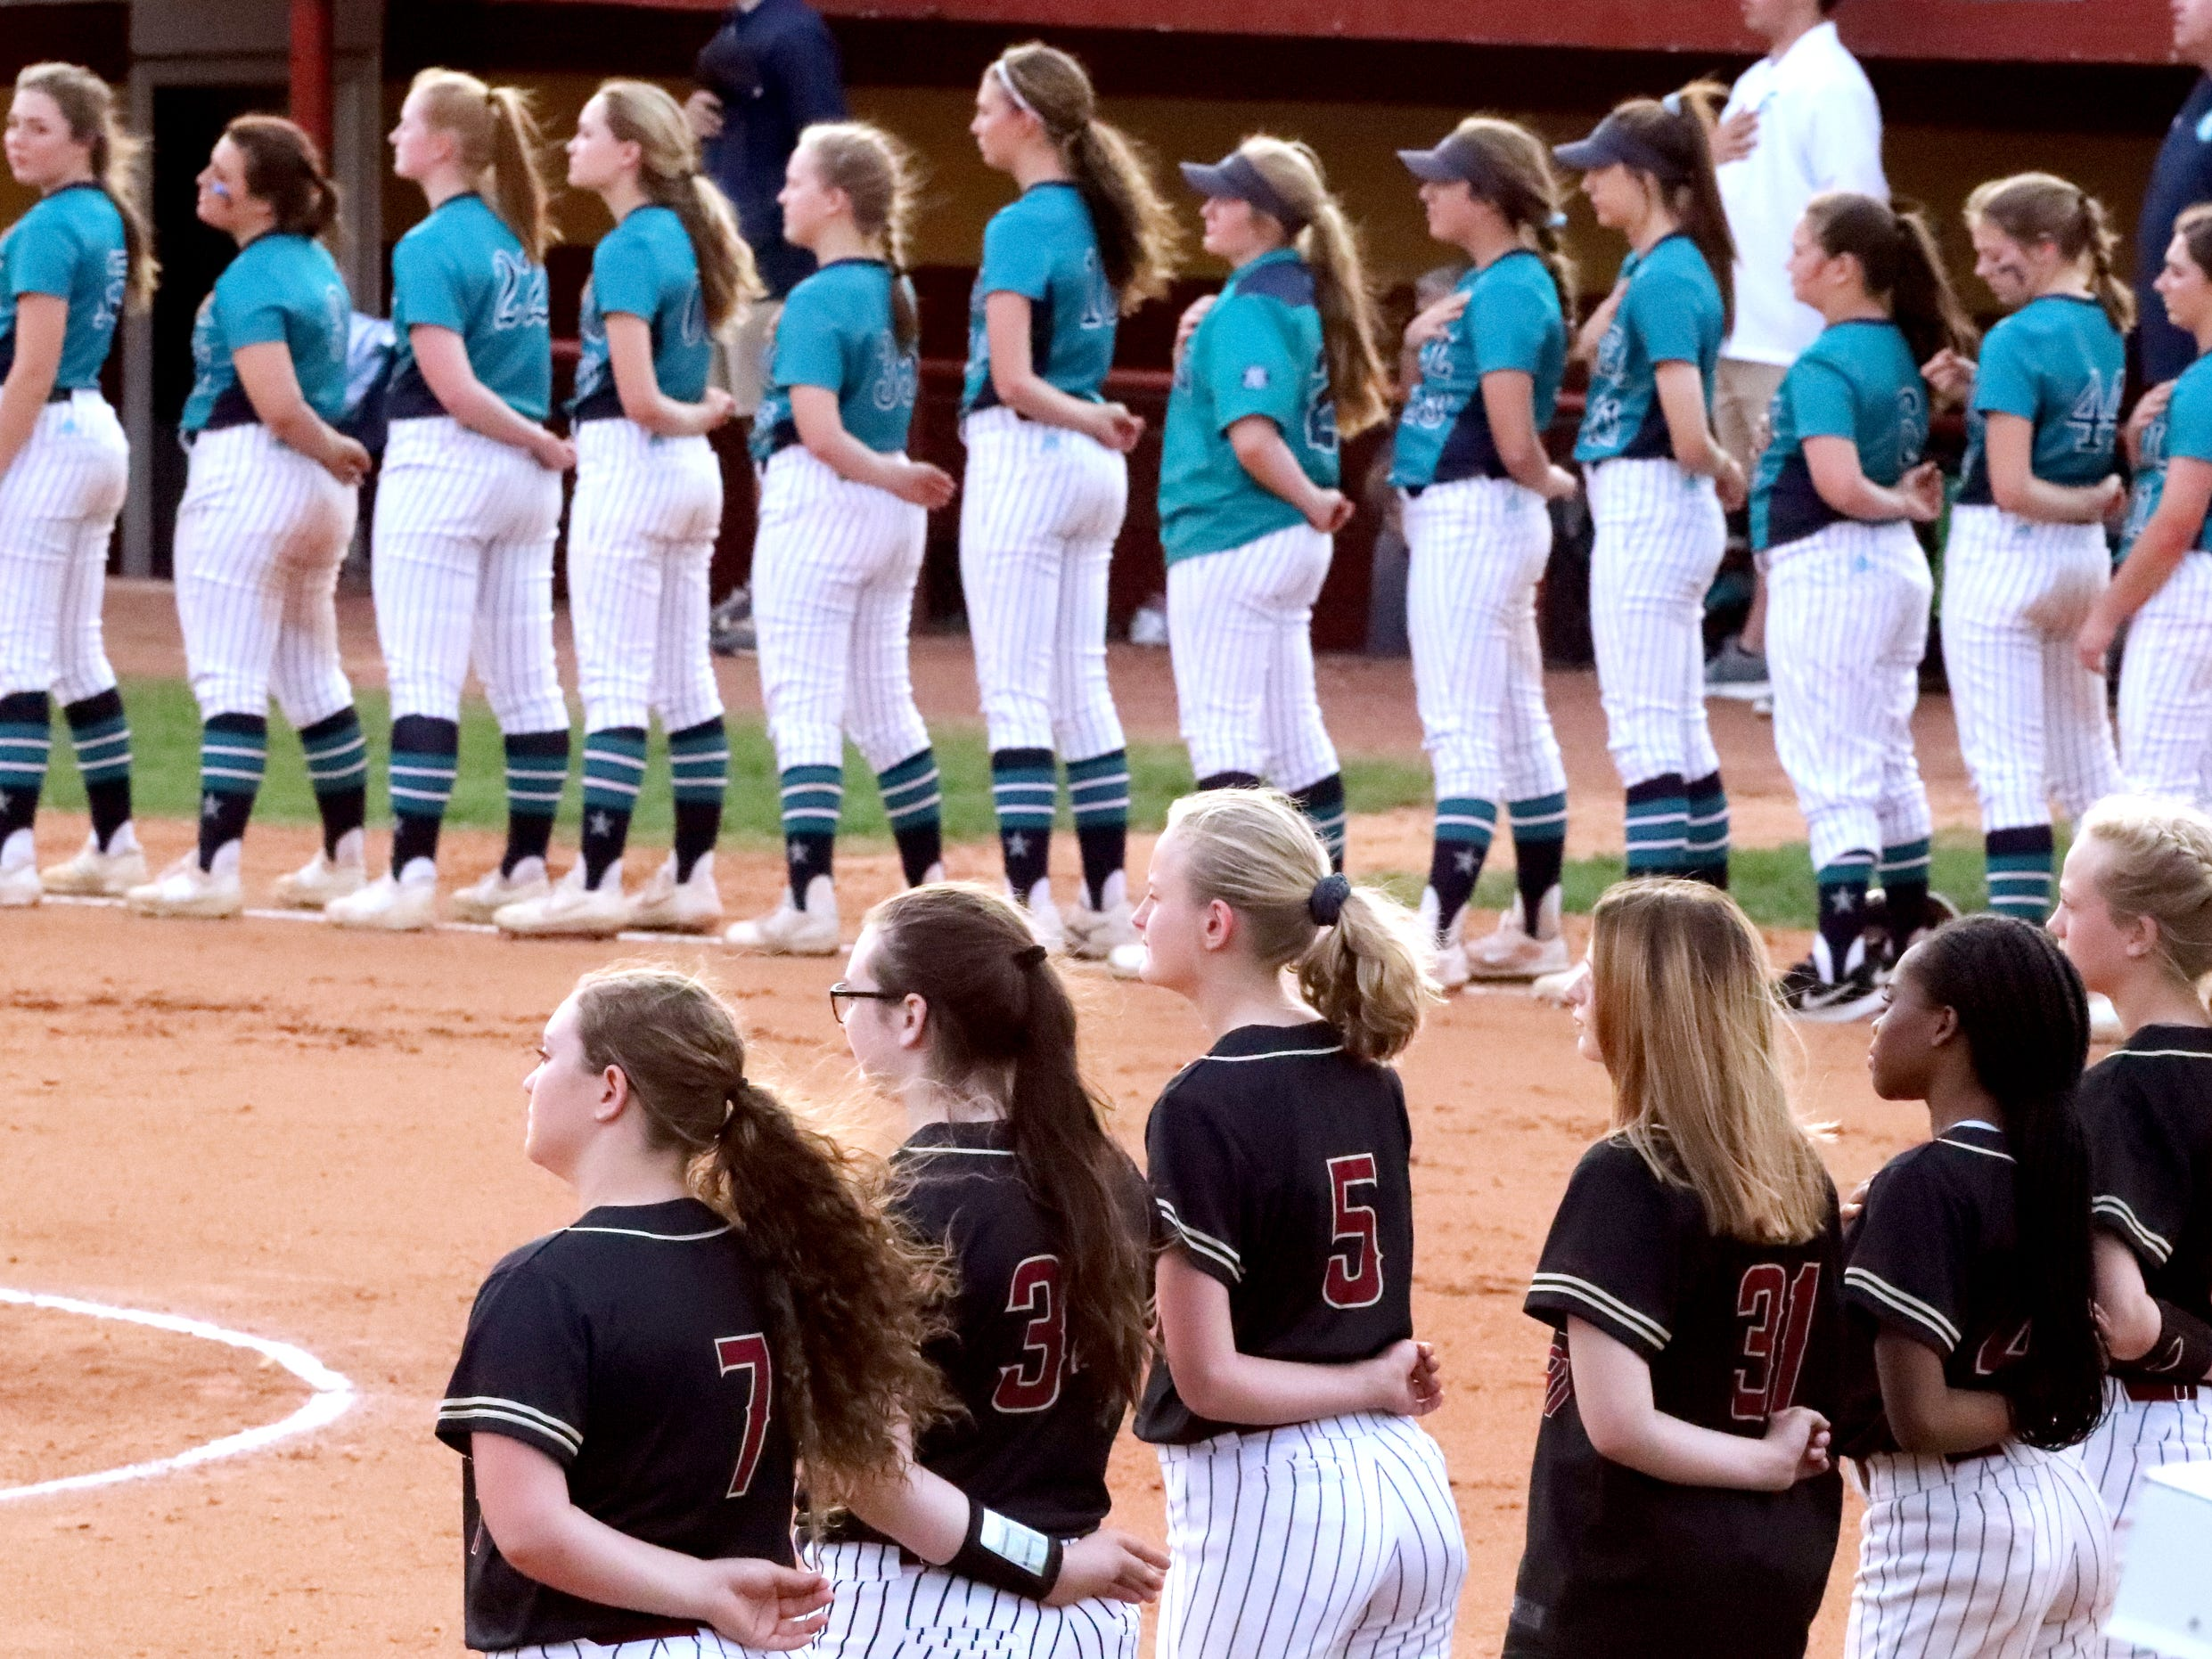 Siegel and against Riverdale players stand for the anthem before the start of the softball game on Thursday April 11, 2019, at Riverdale.